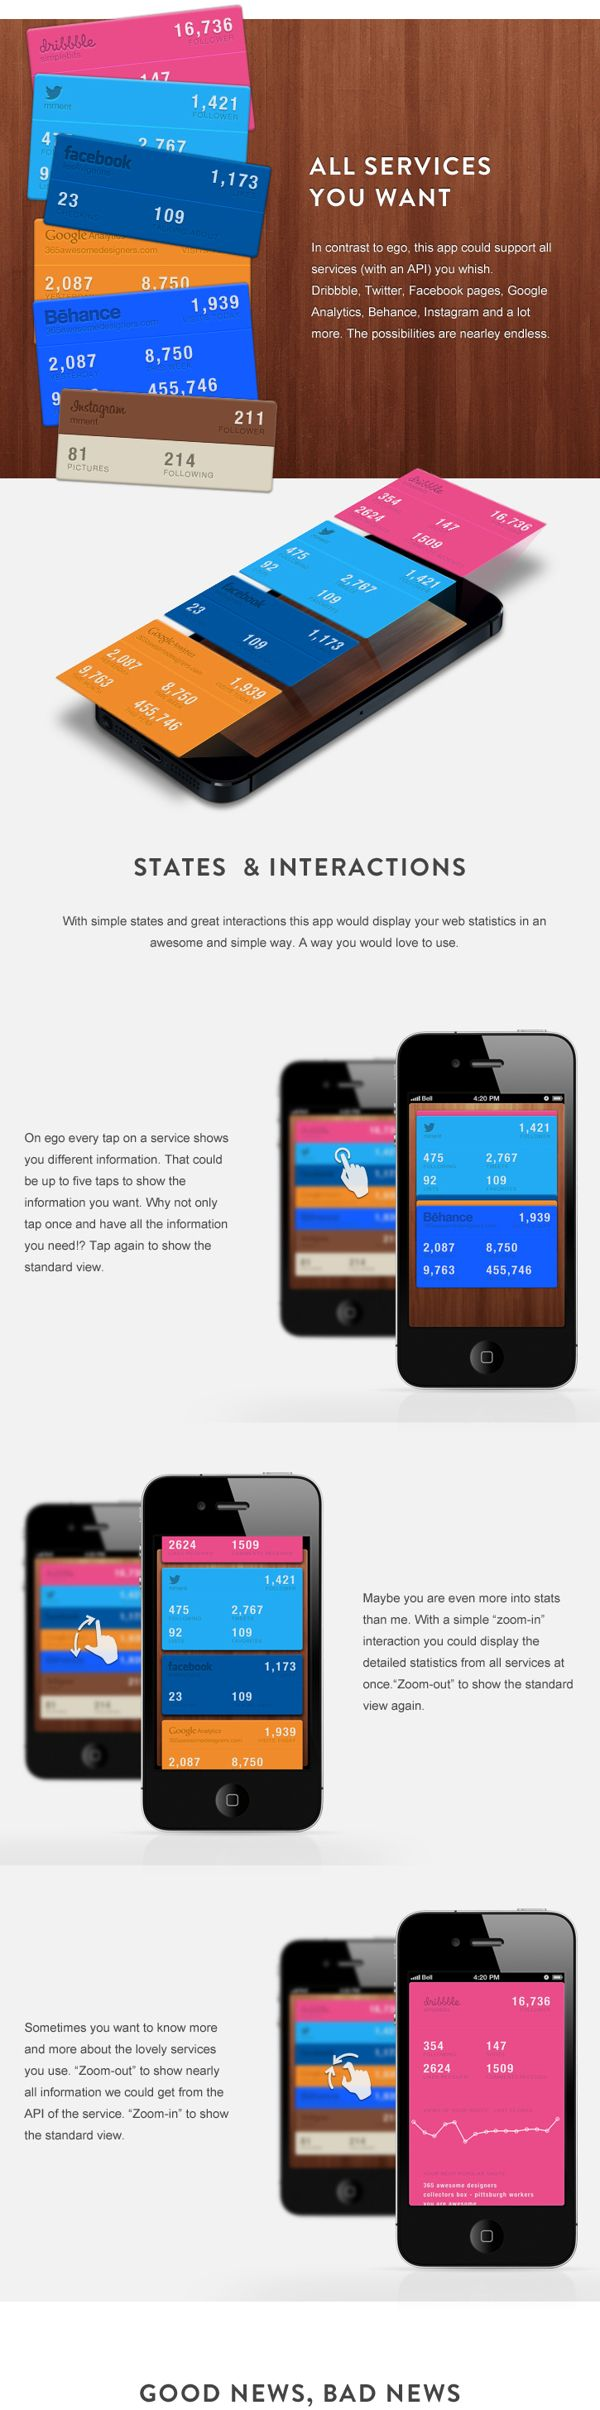 web stats app by Matthias Mentasti, via #Behance #mobile #app #ui